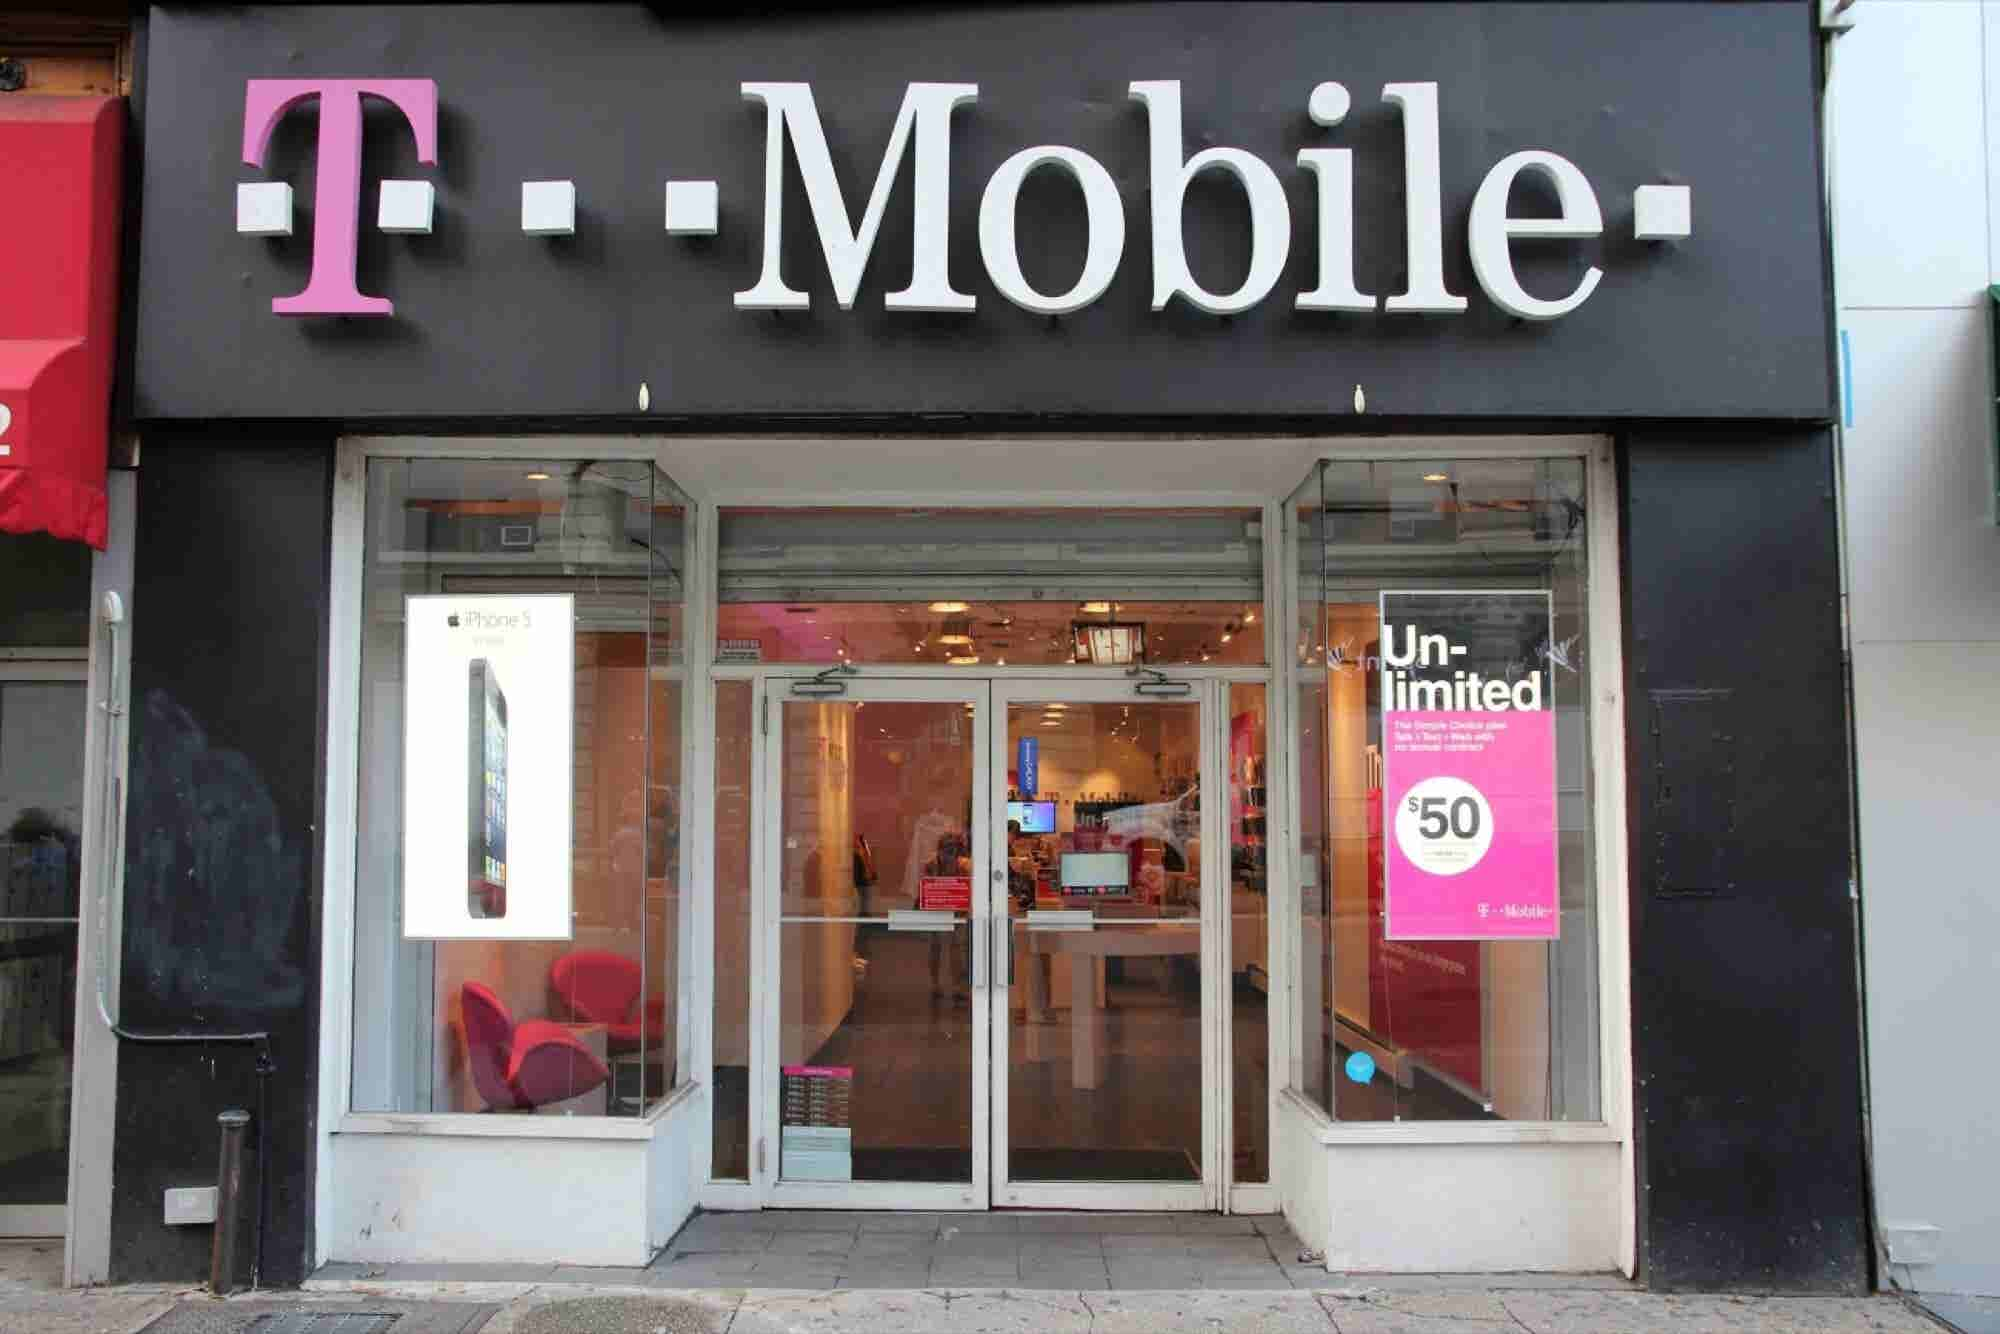 15 Million T-Mobile Customers' and Applicants' Personal Data Exposed in Epic Experian Hack